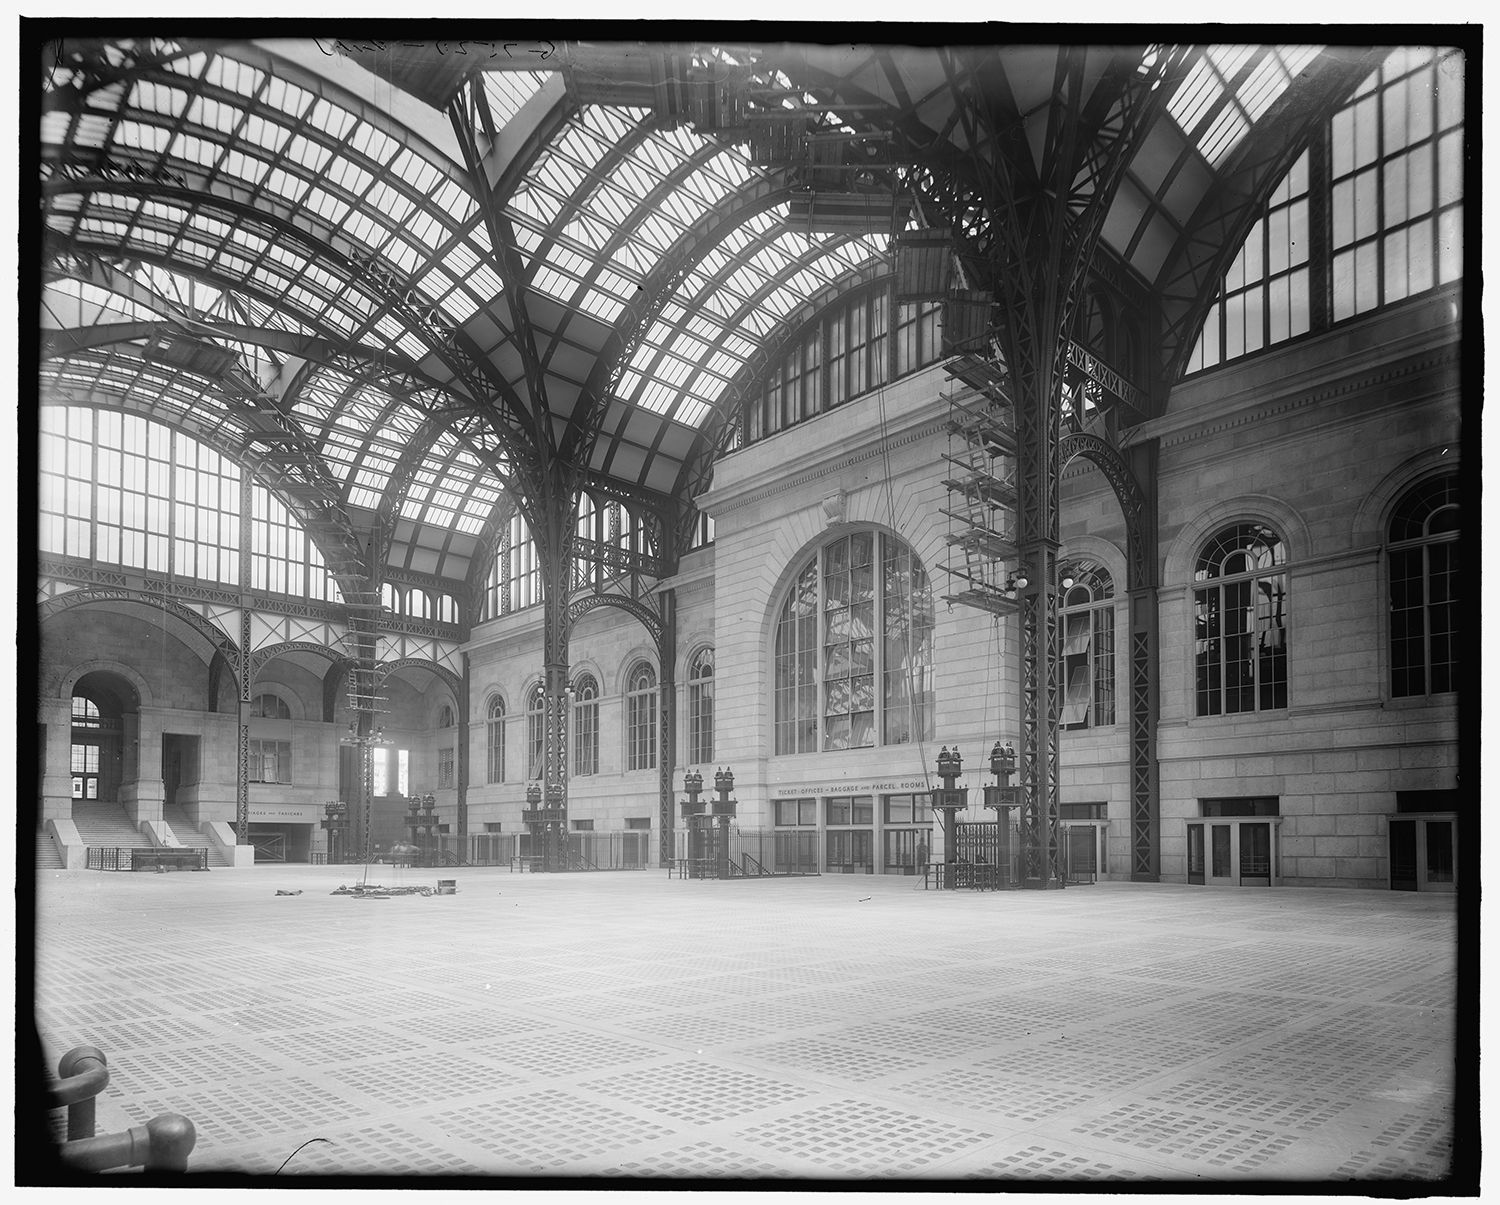 Penn Station. Photo via Library of Congress.